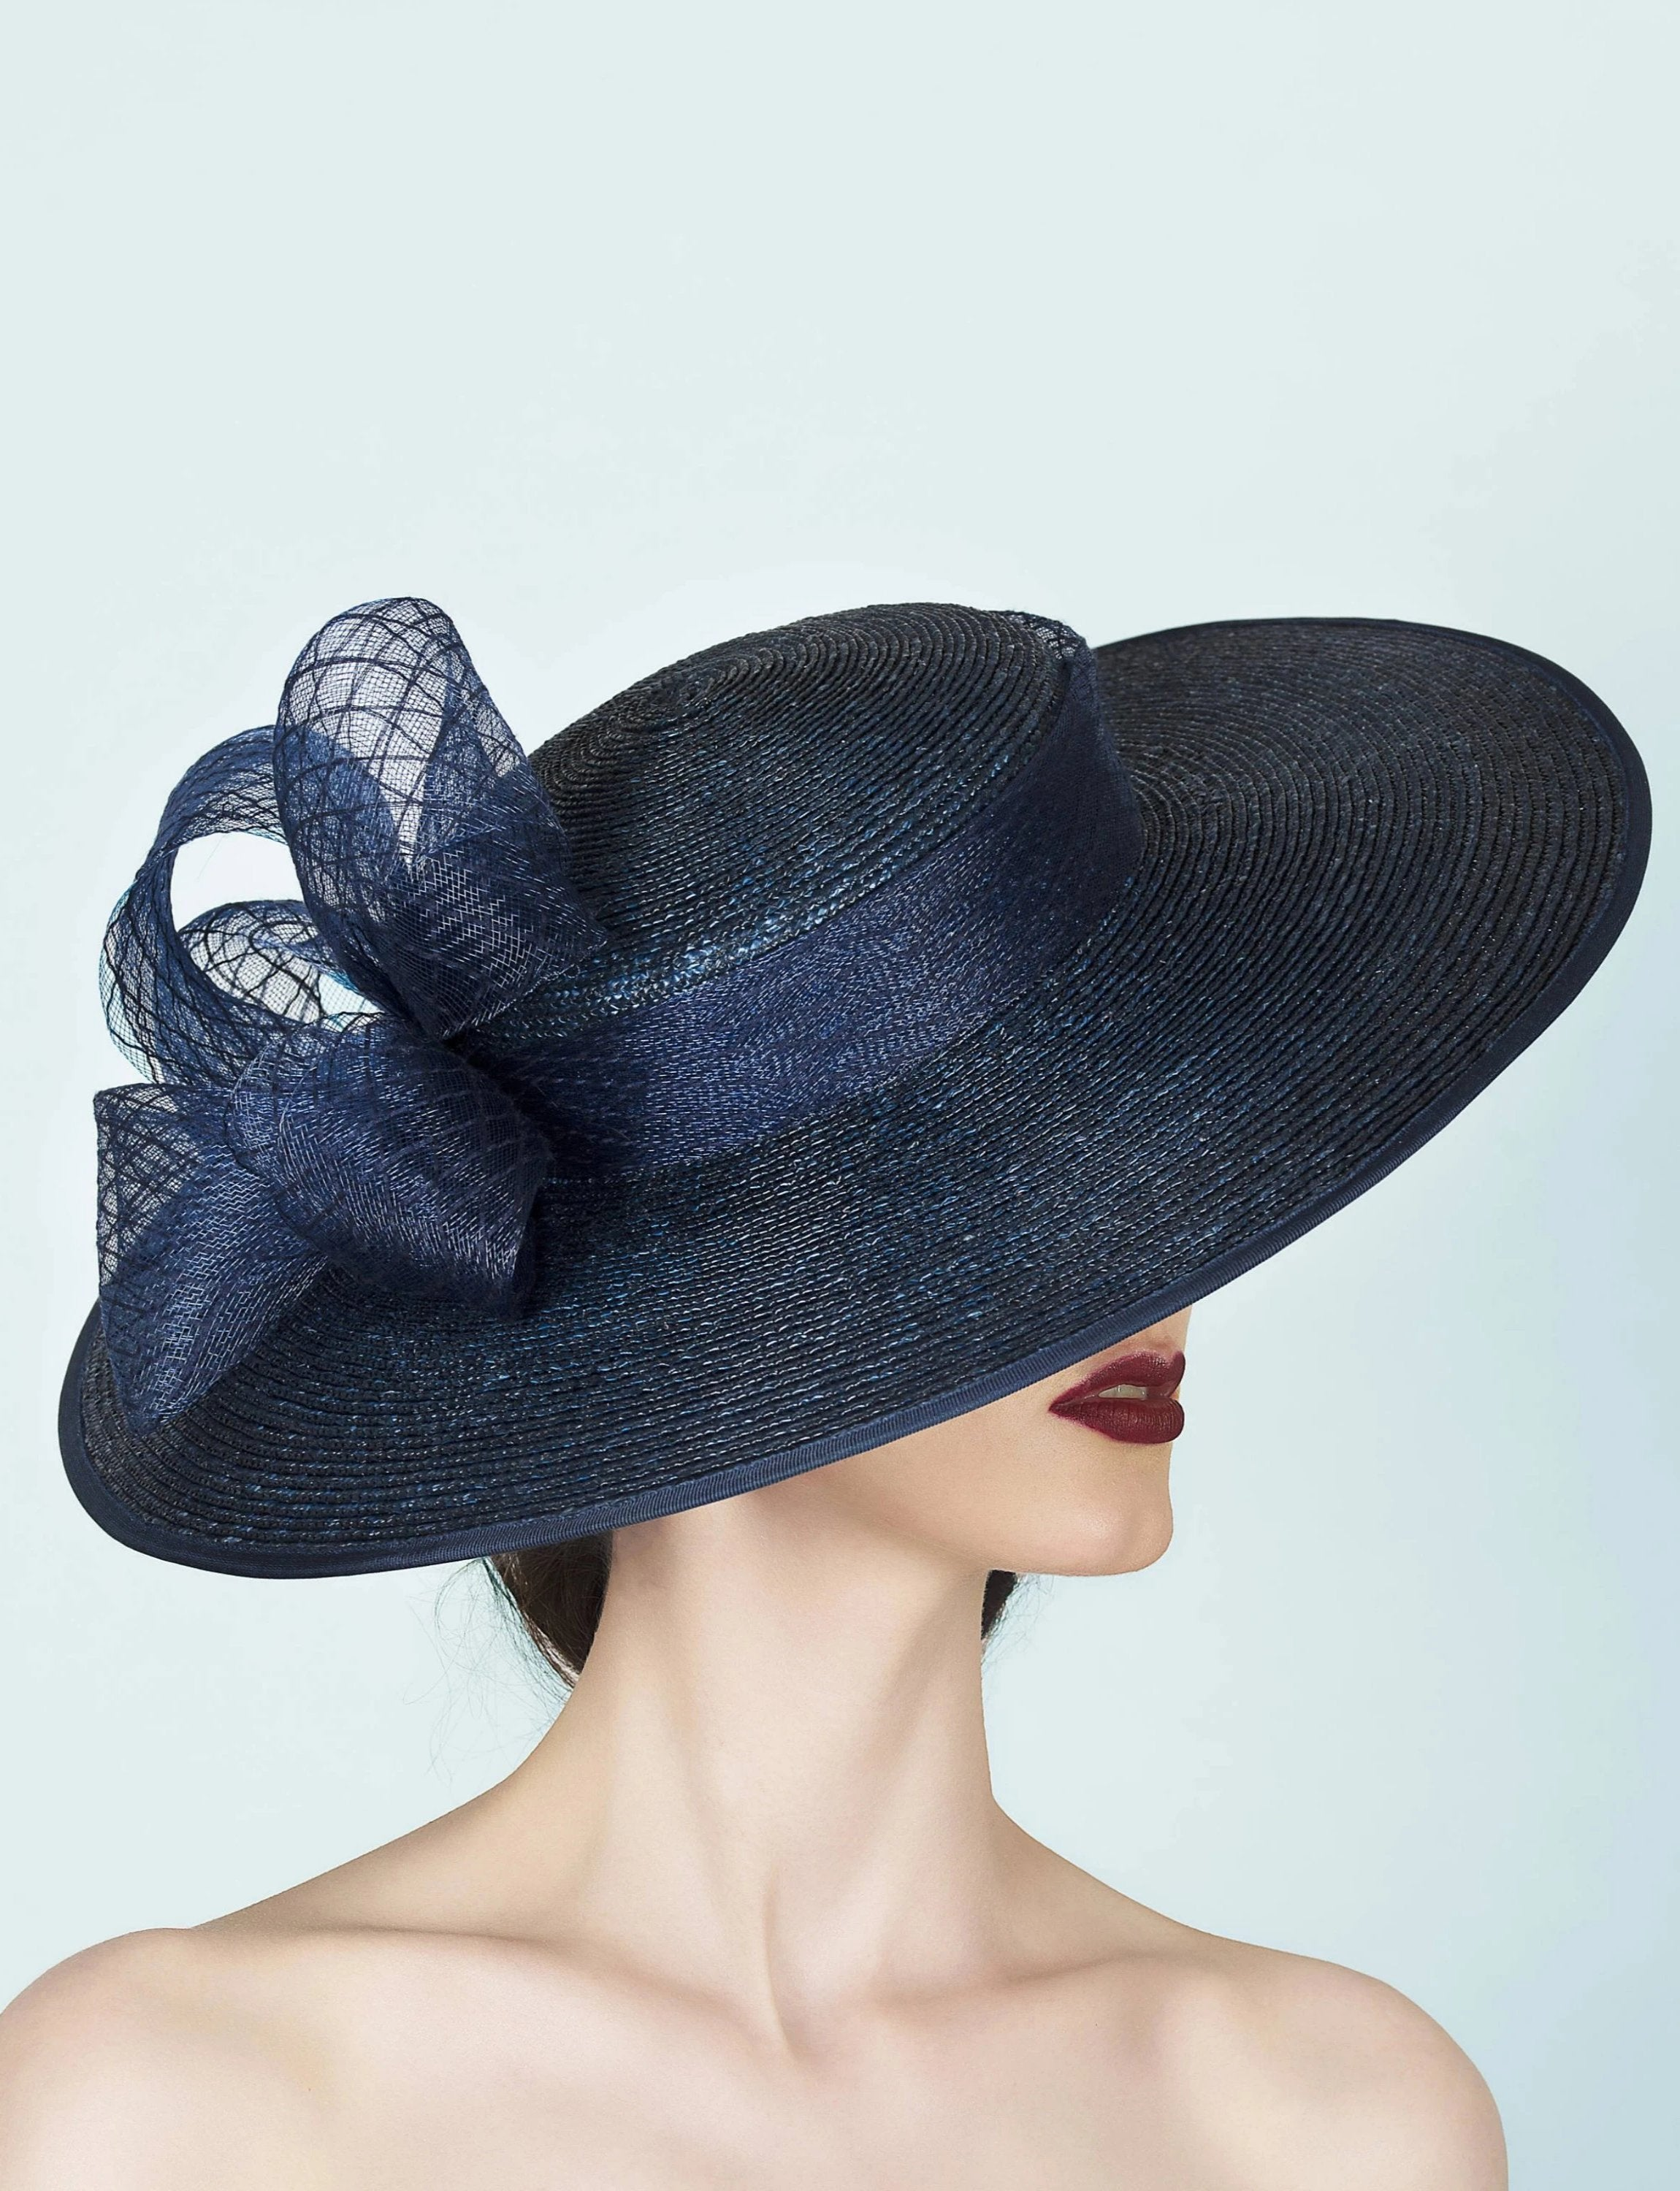 navy blue wide brimmed straw boater hat for royal ascot wedding guest